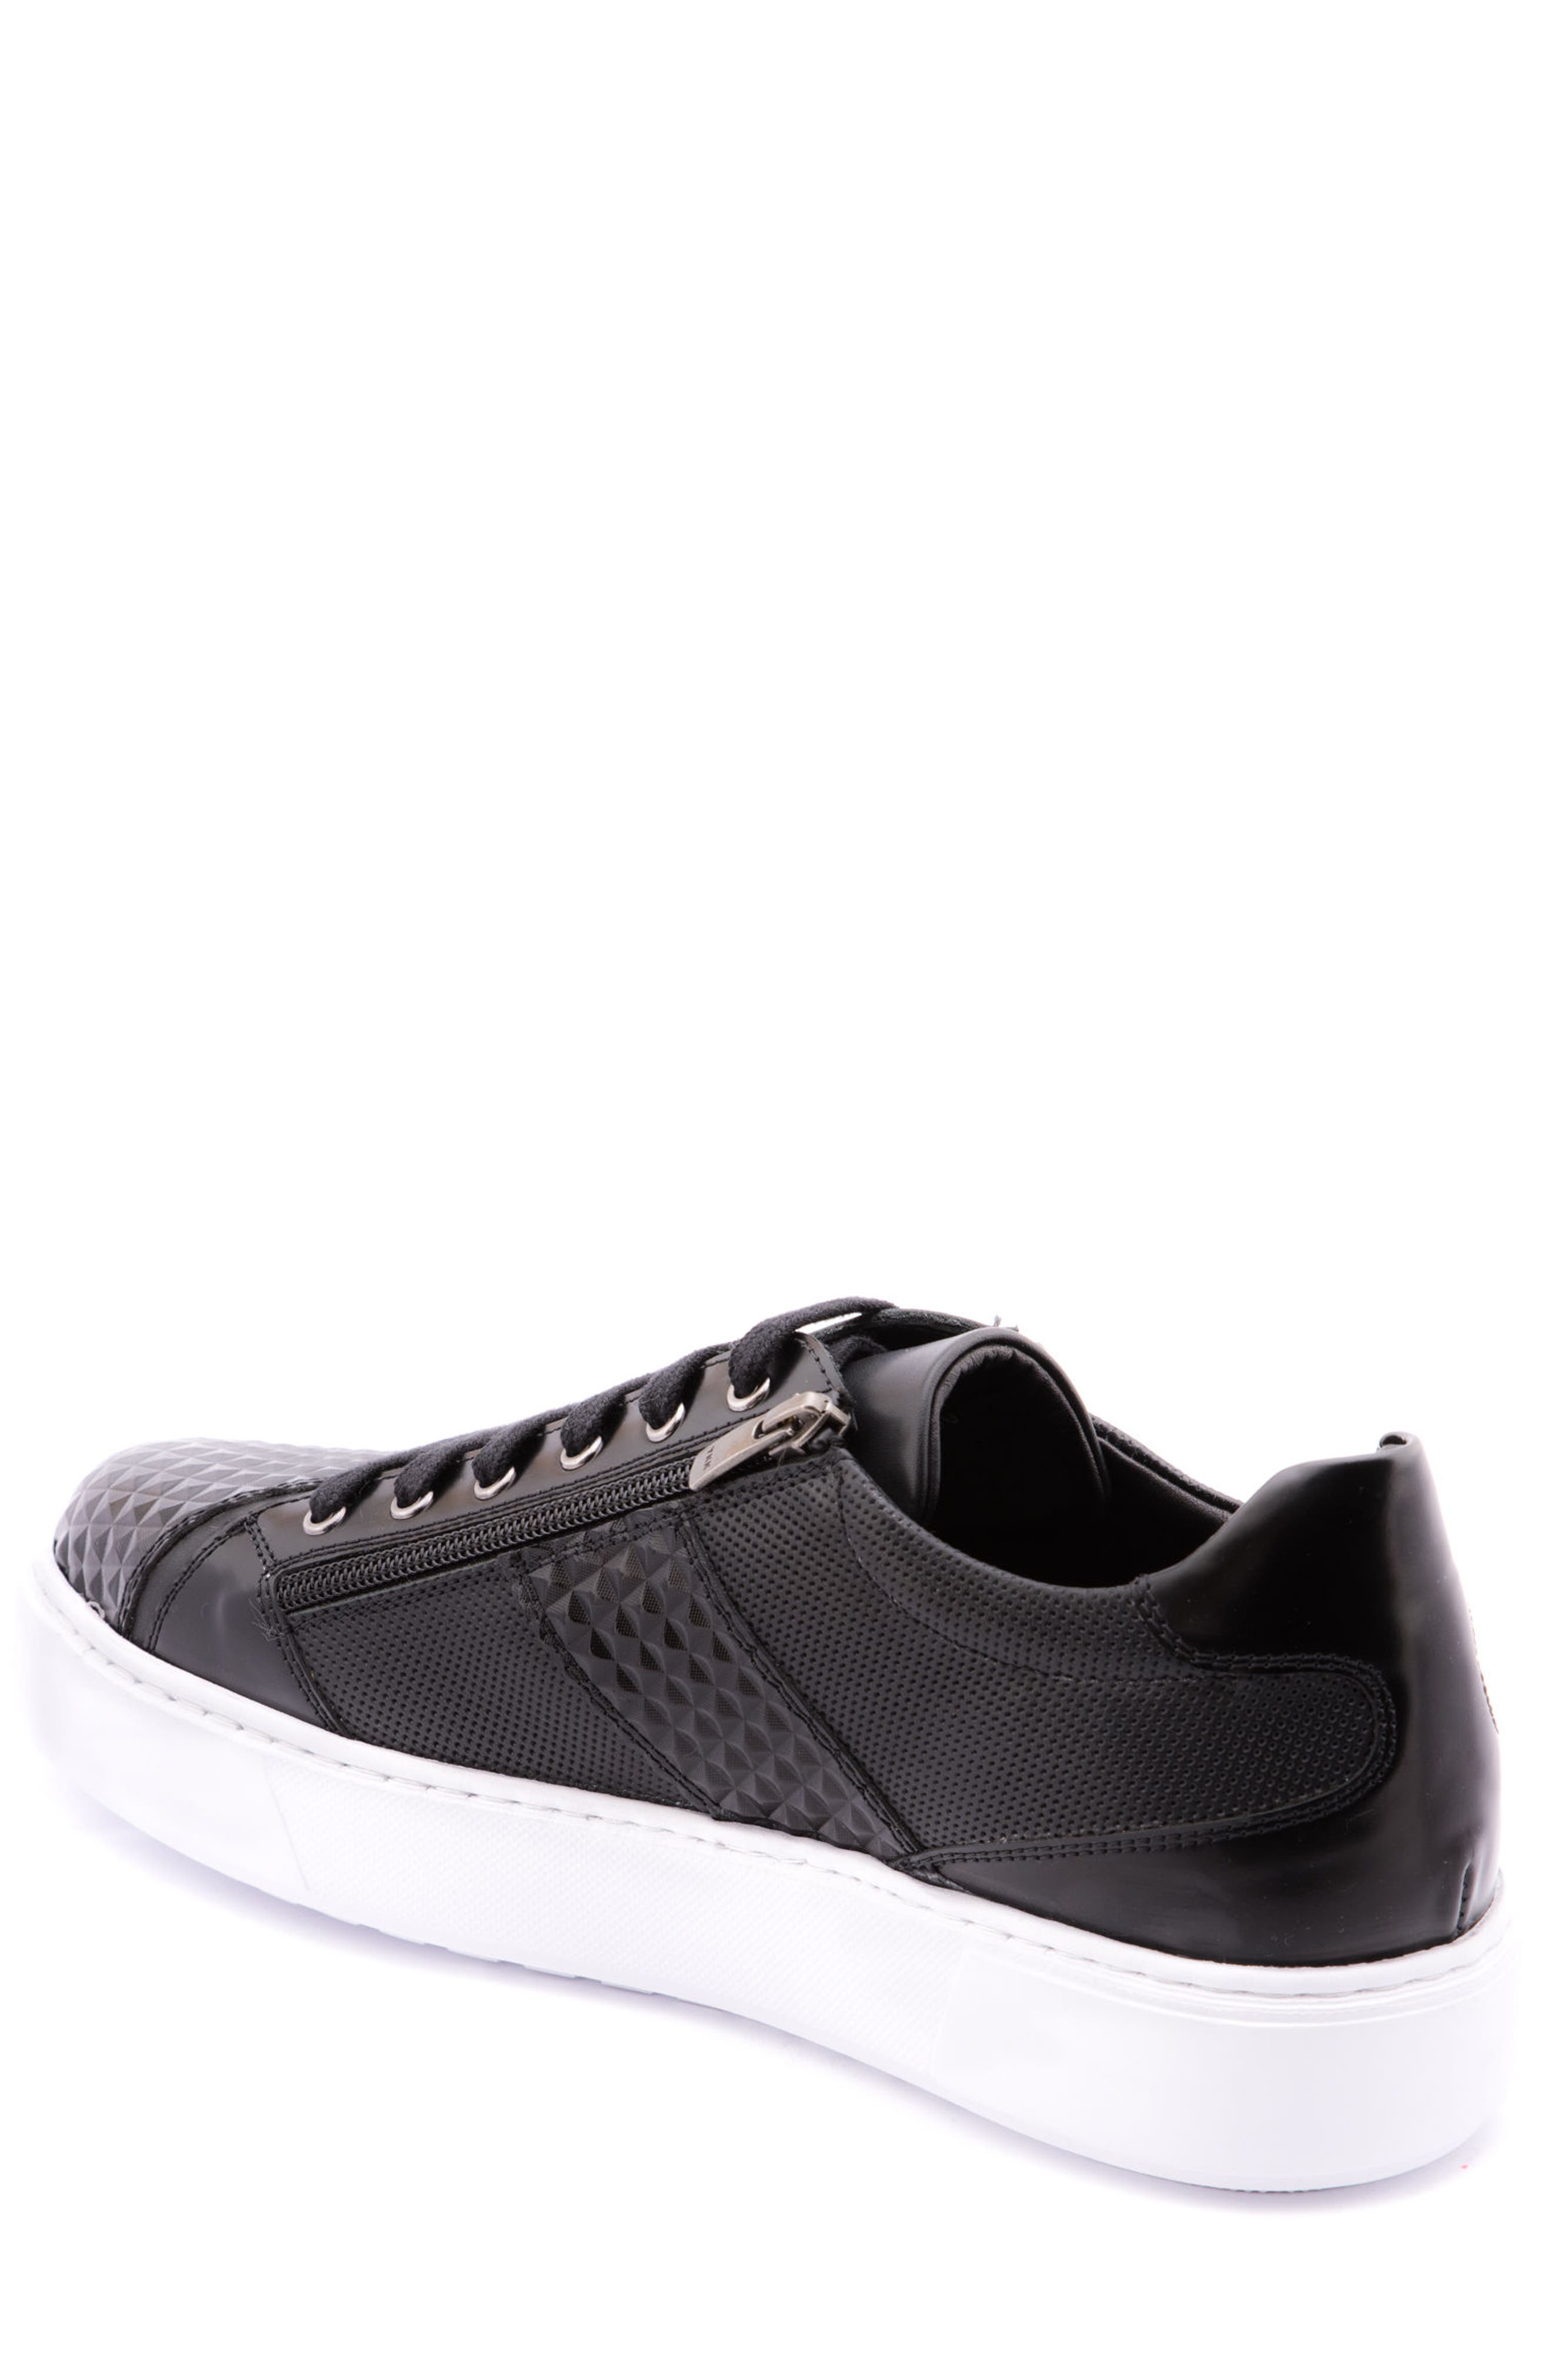 Justin Perforated Sneaker,                             Alternate thumbnail 2, color,                             BLACK